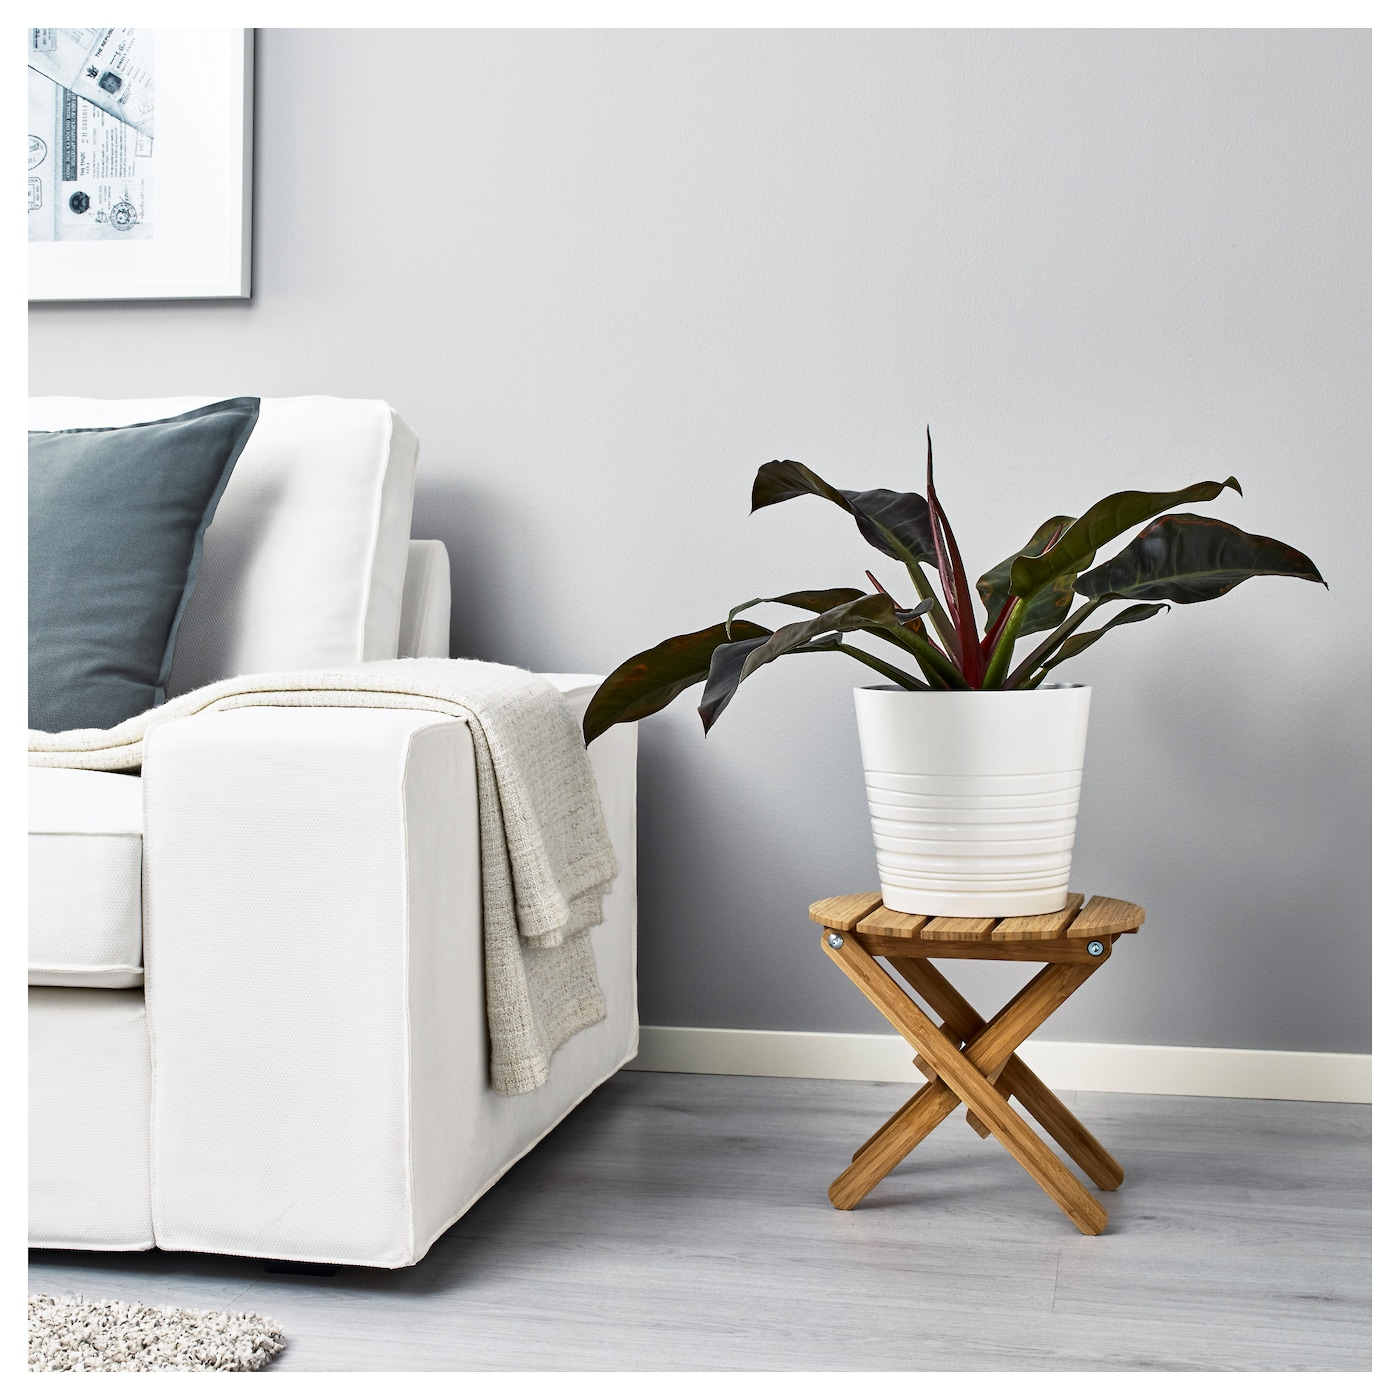 IKEA PHILODENDRON potted plant